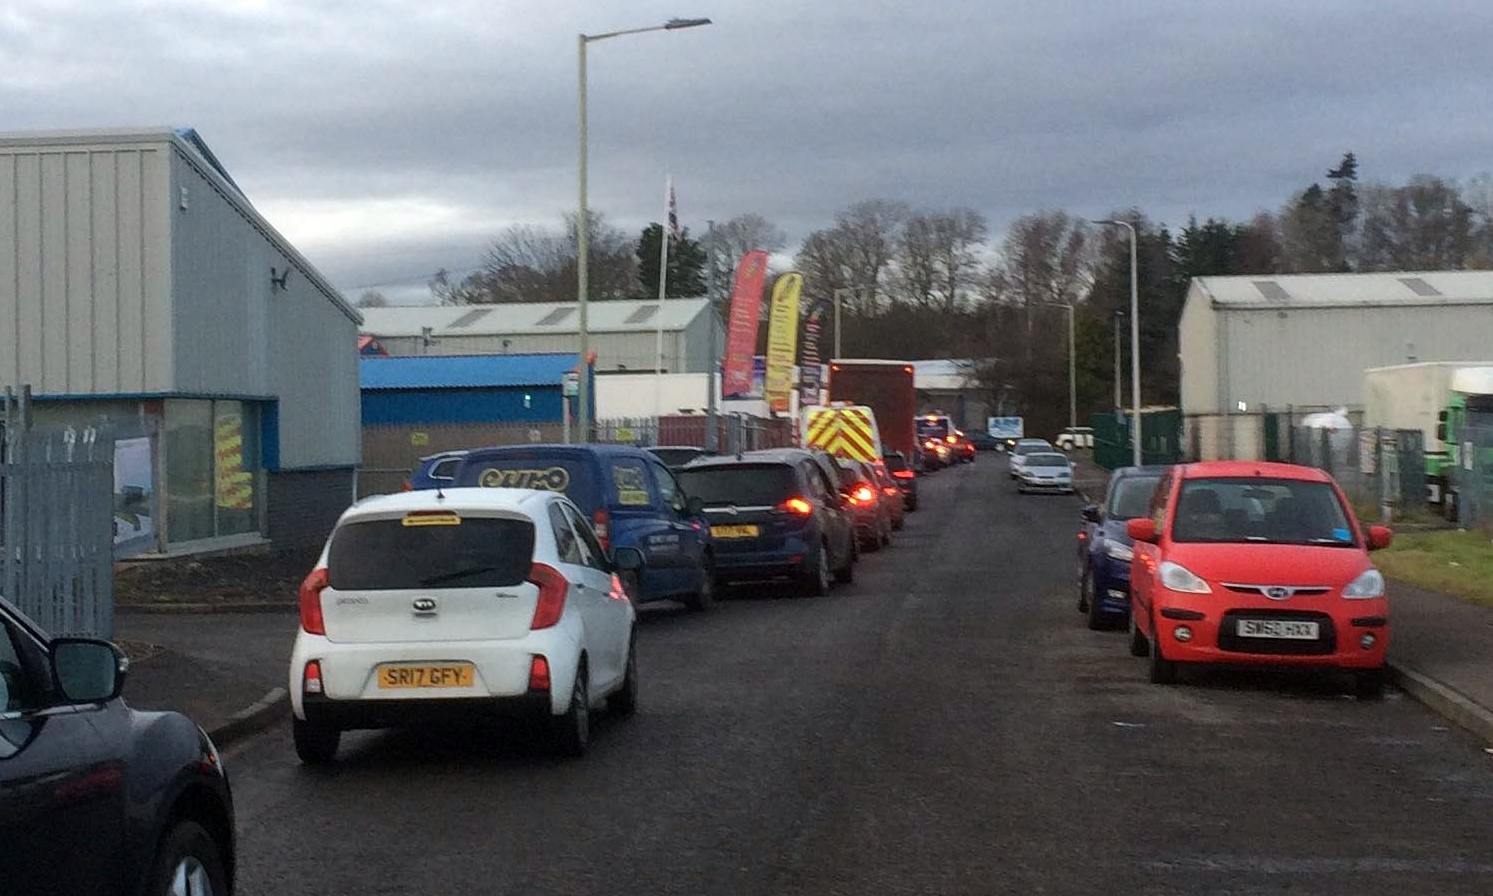 The closure of Ruthvenfield Road has caused regular tailbacks in the industrial estate.